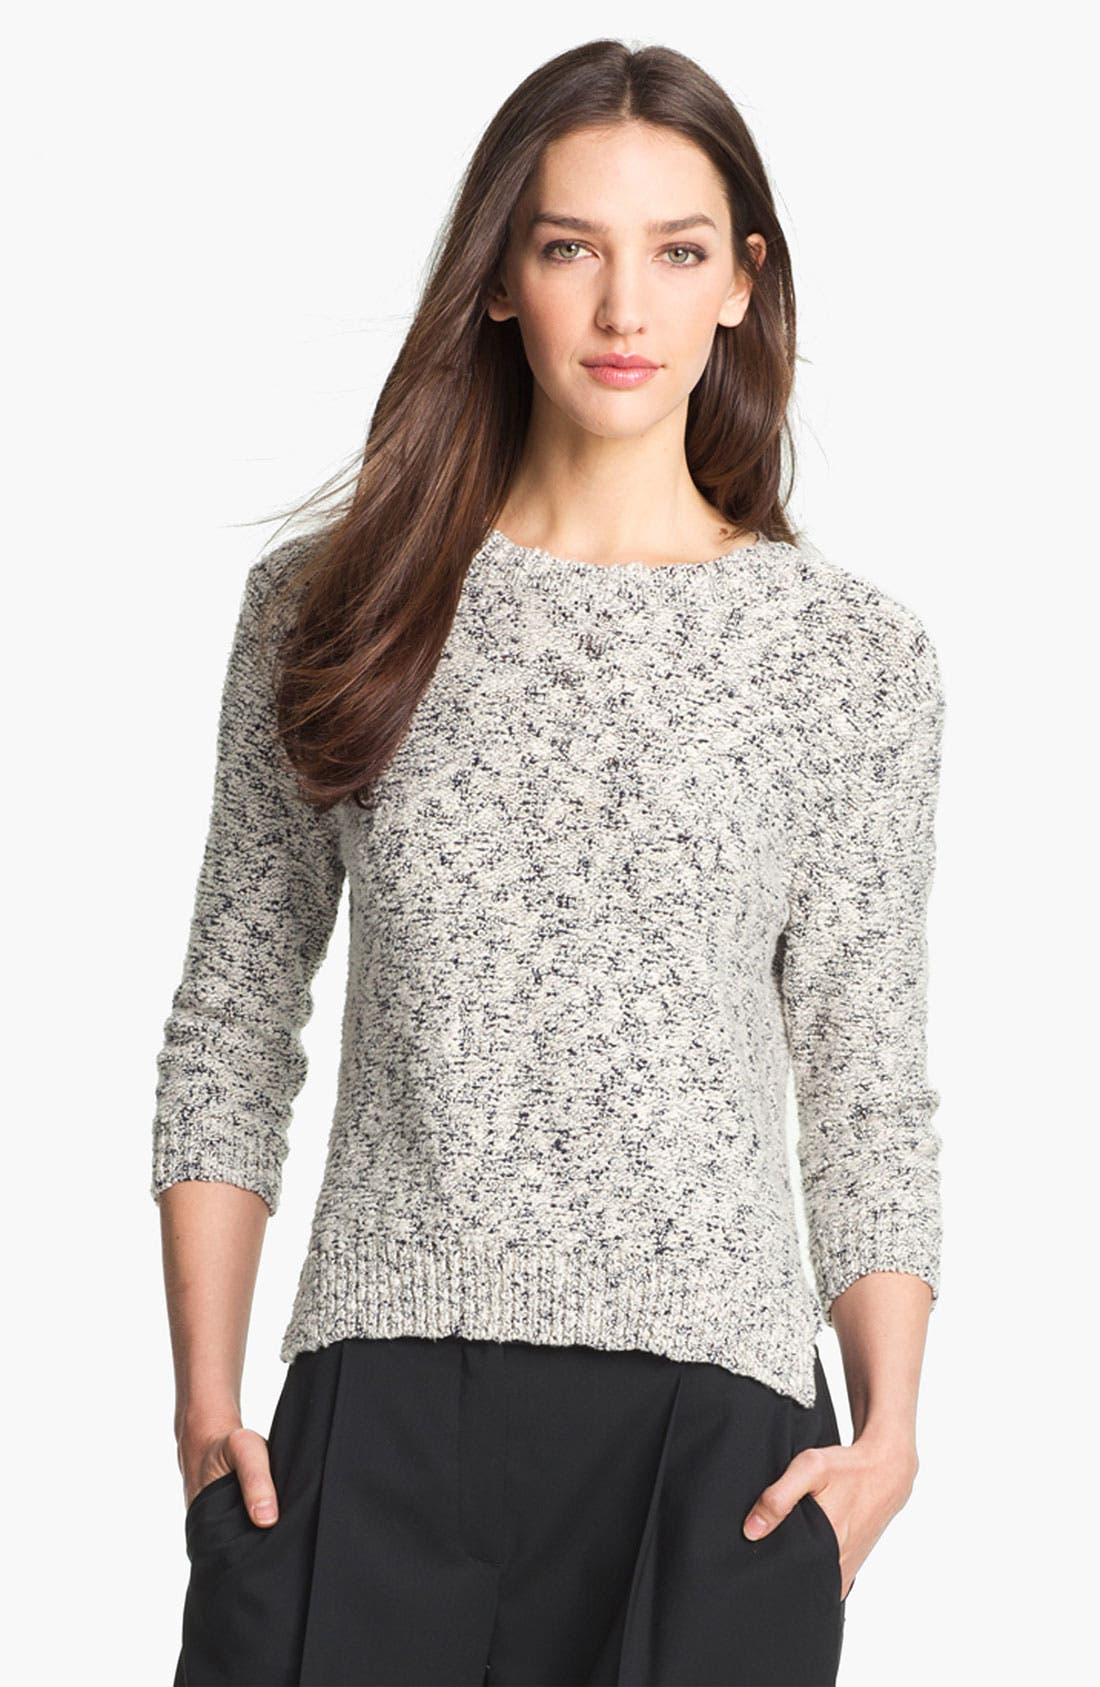 Main Image - Theory 'Rainee' Cotton Blend Sweater